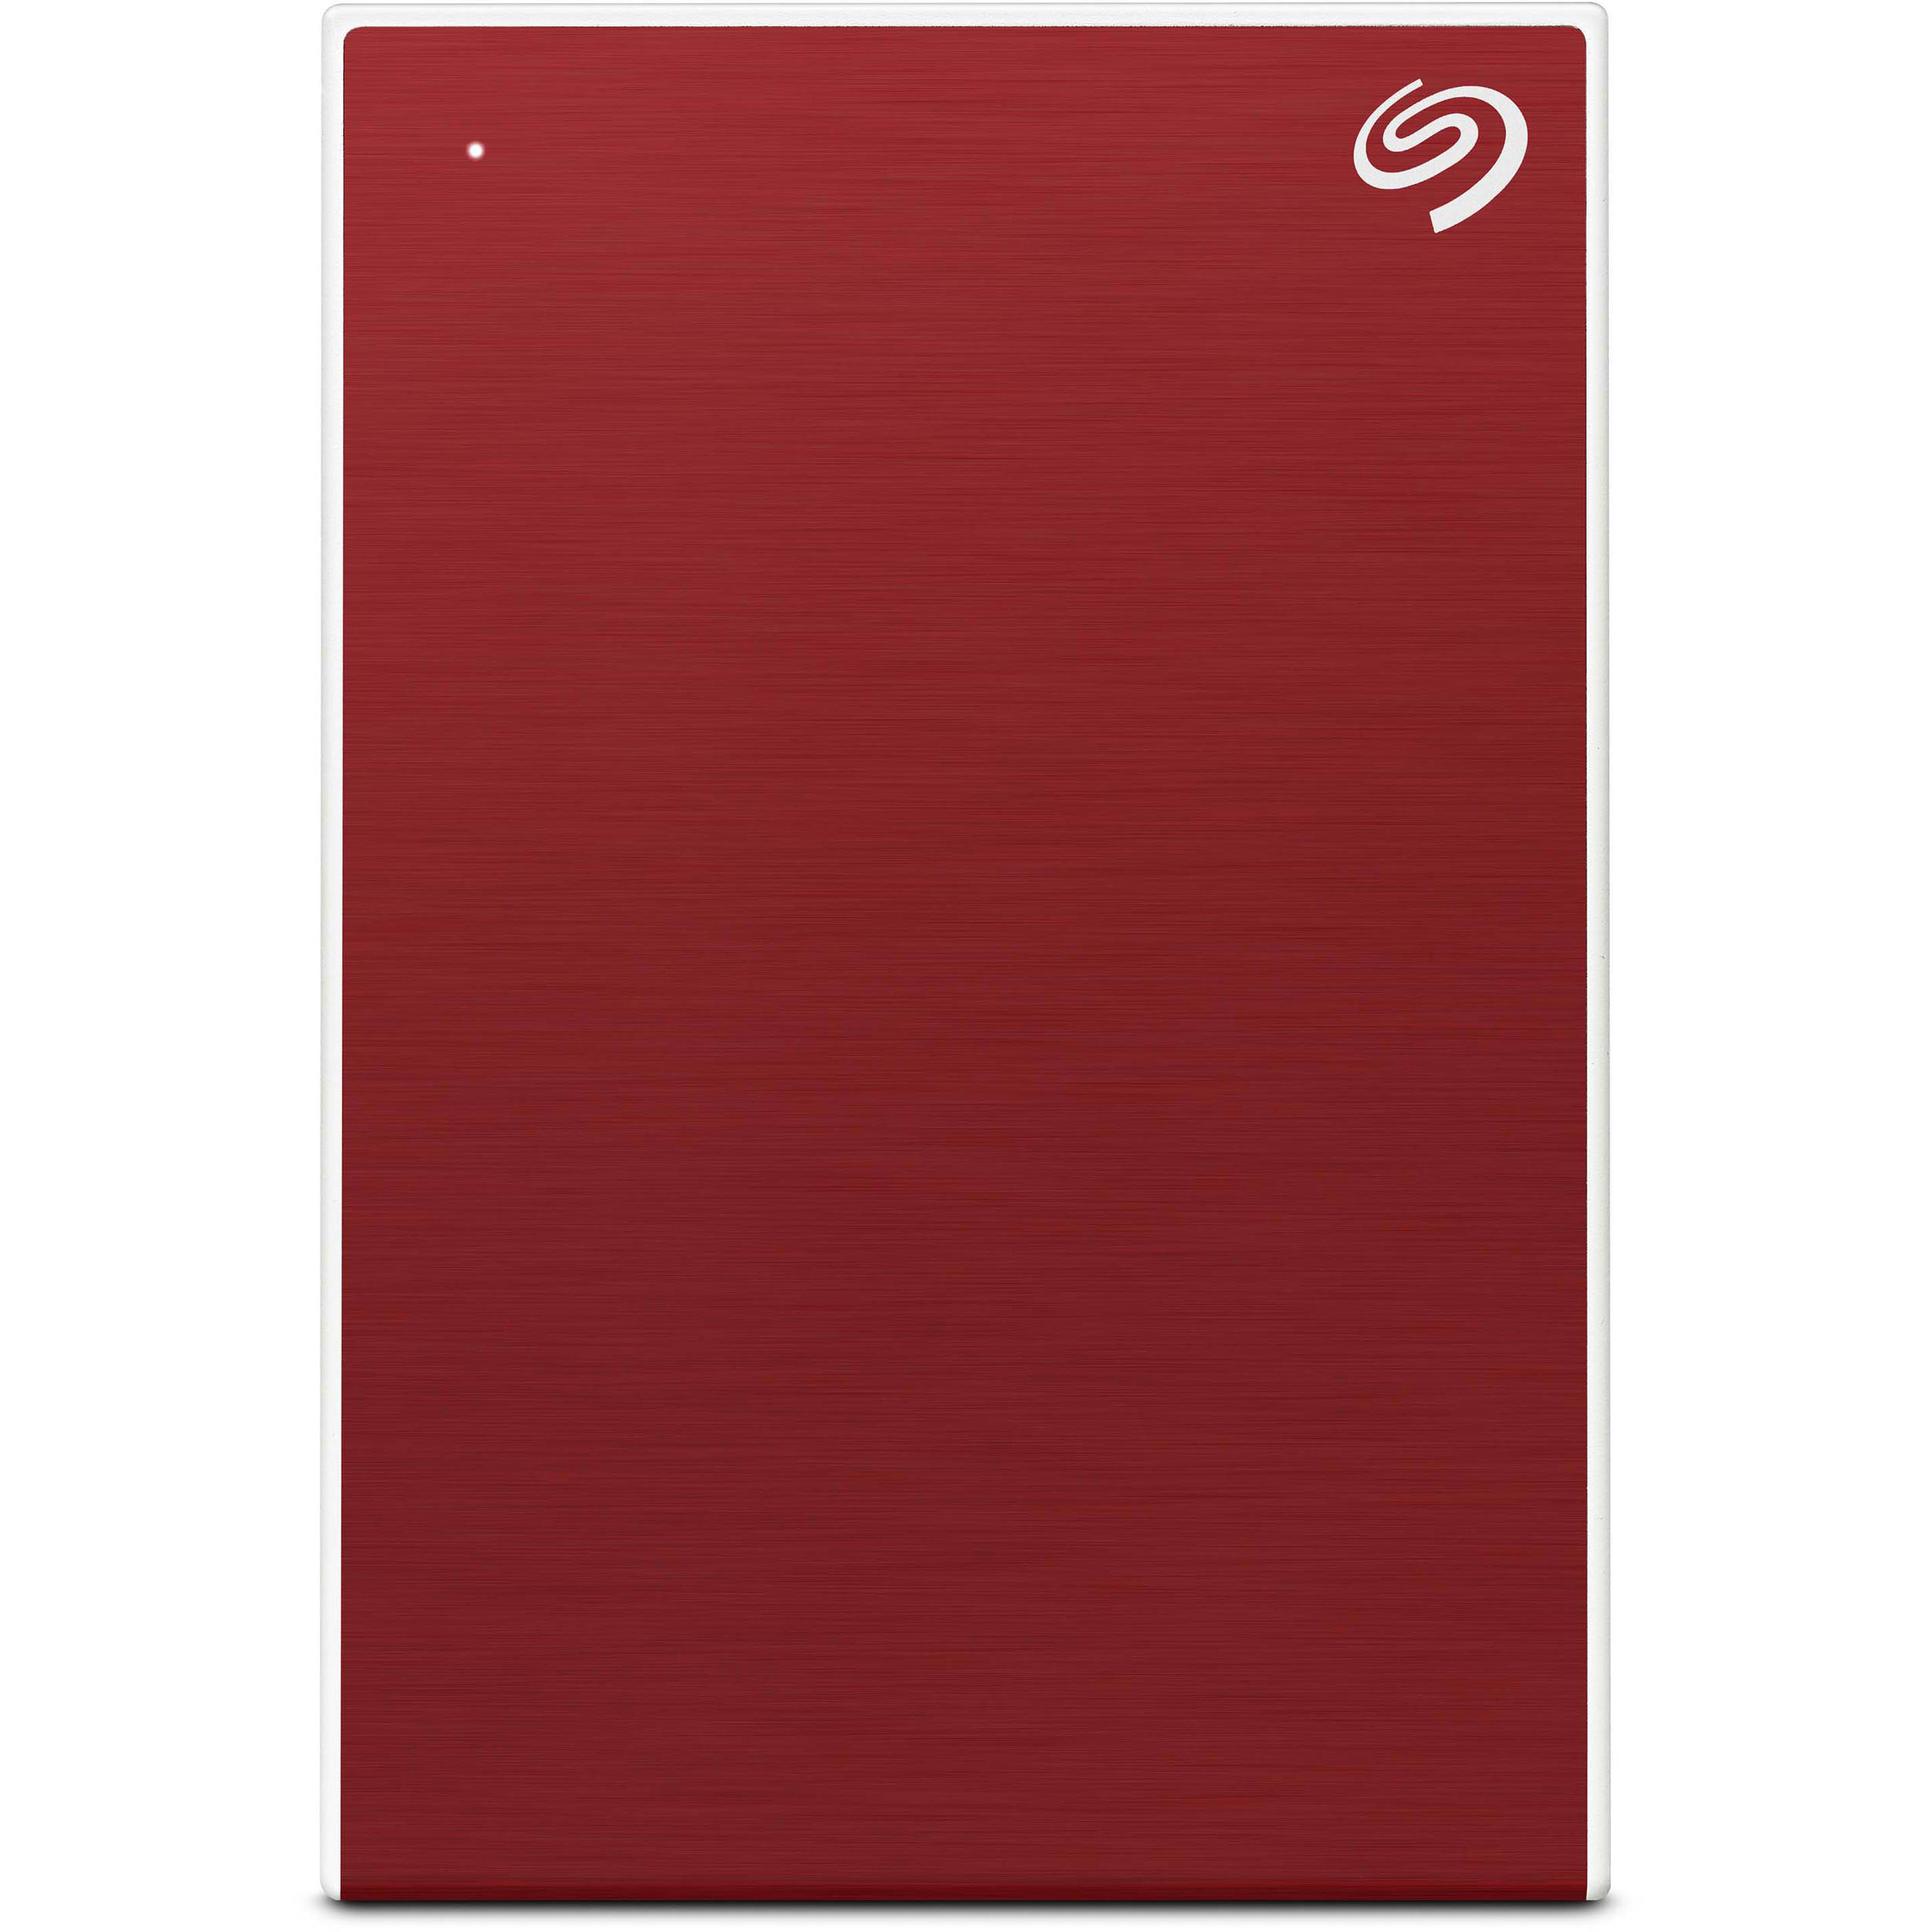 Hard Drives 5TB Seagate Backup Plus USB3 Red Ext HDD